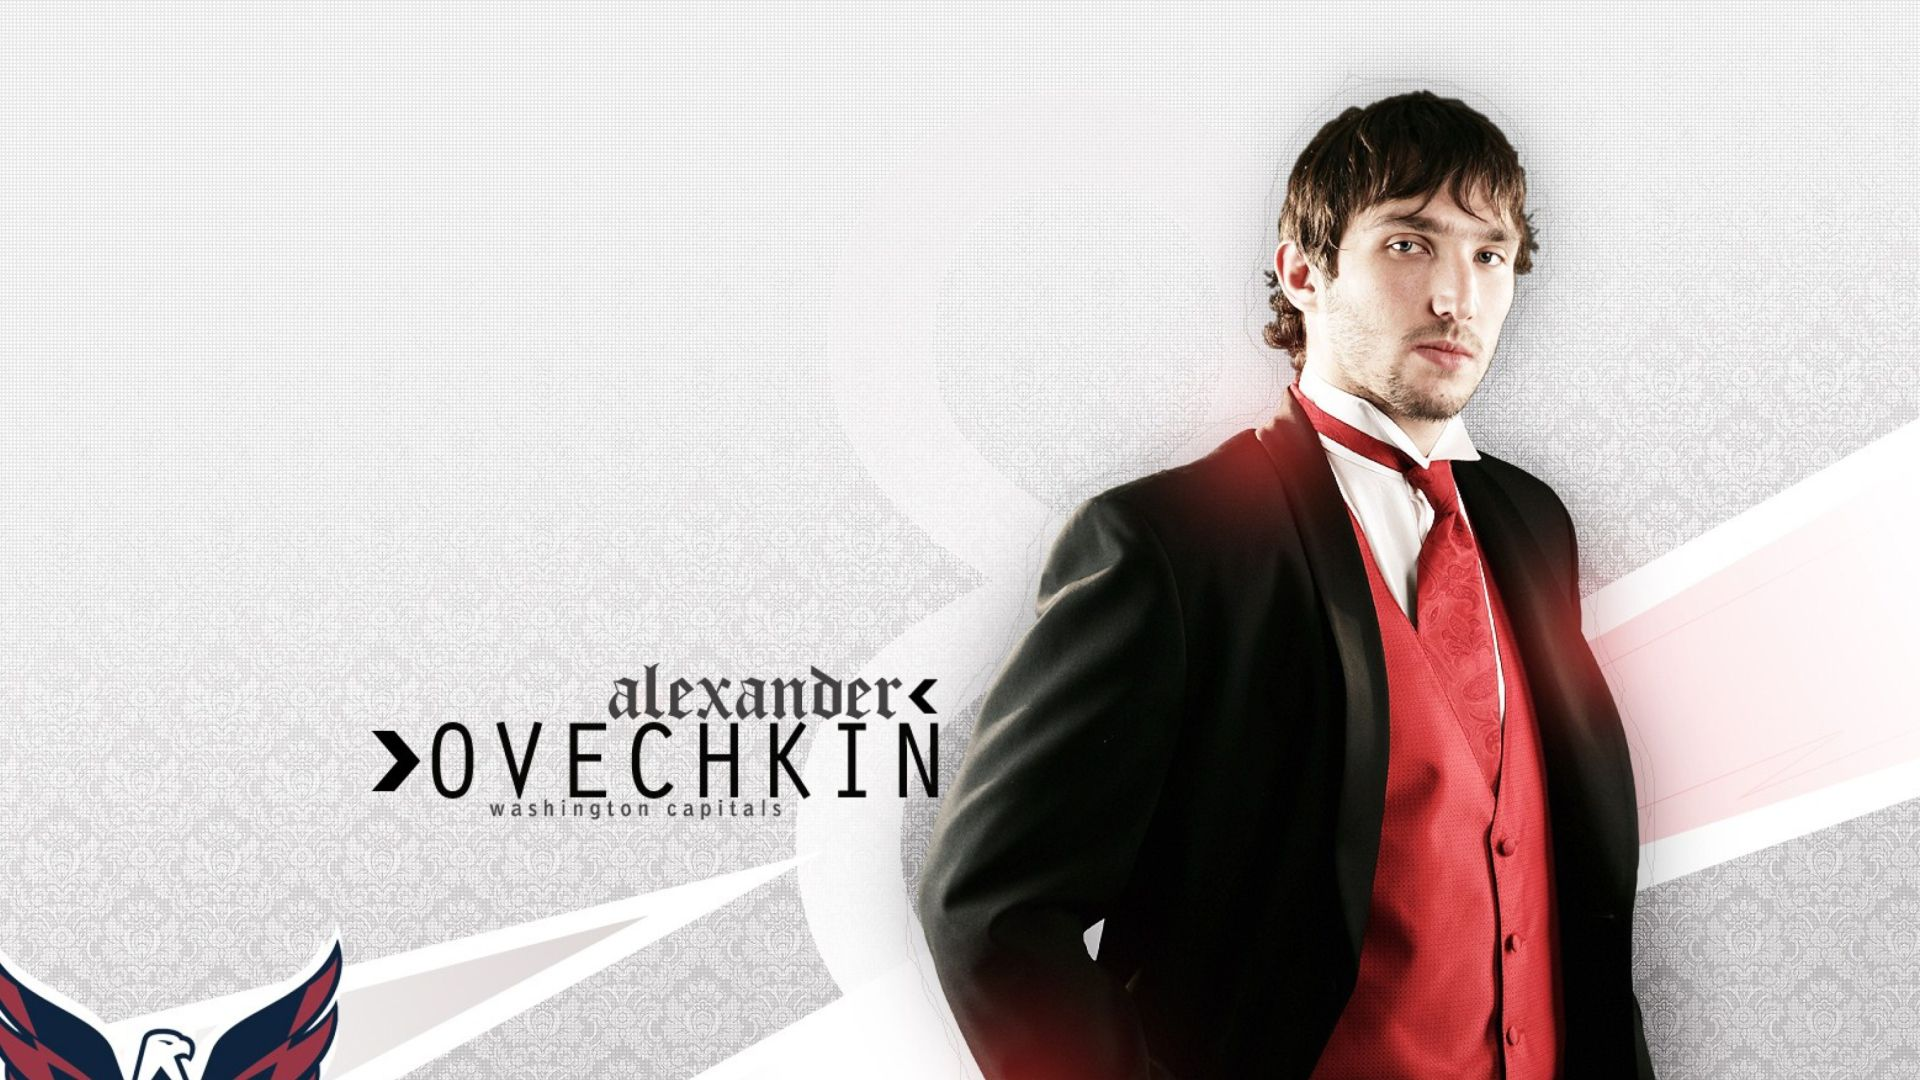 Ovechkin Photo Shoot